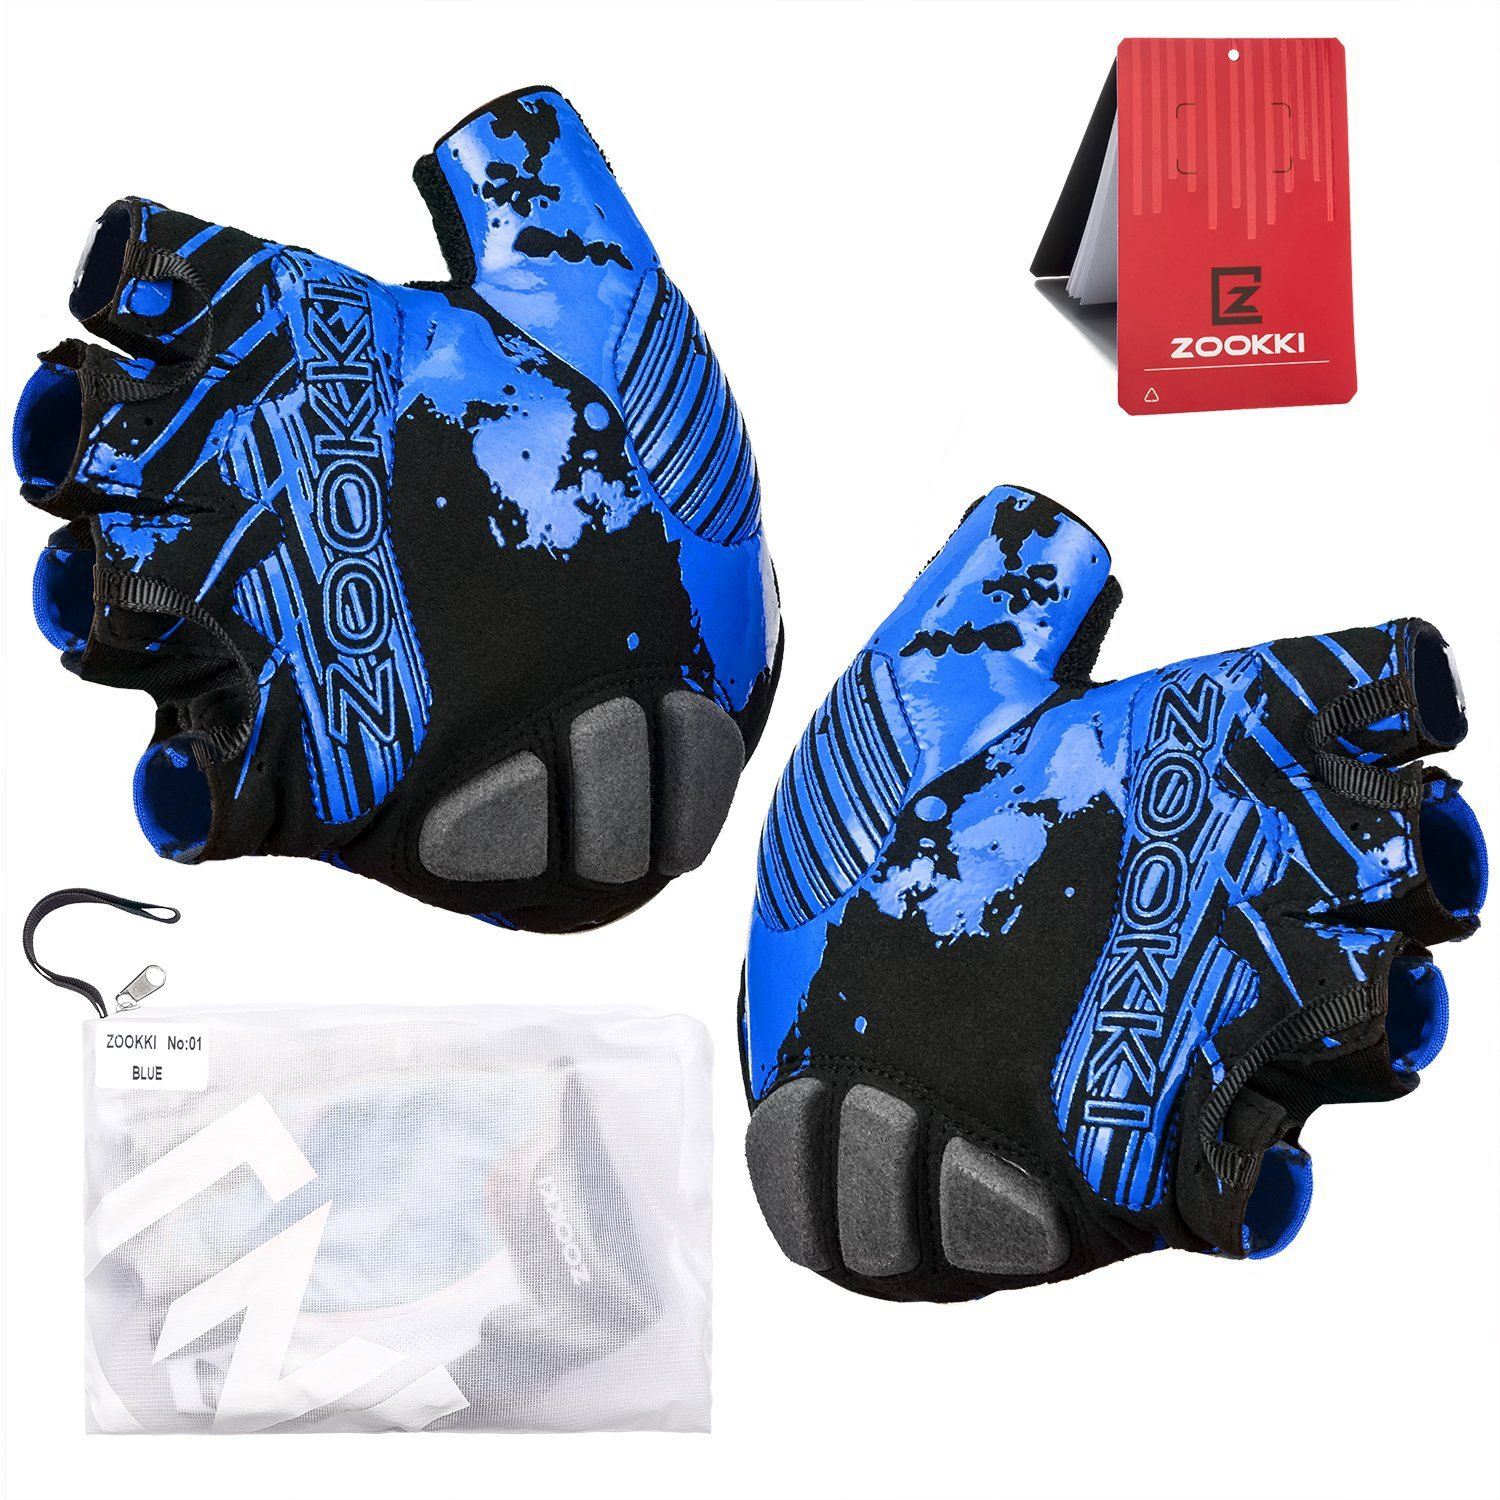 Best cycling gloves for numbness 2016